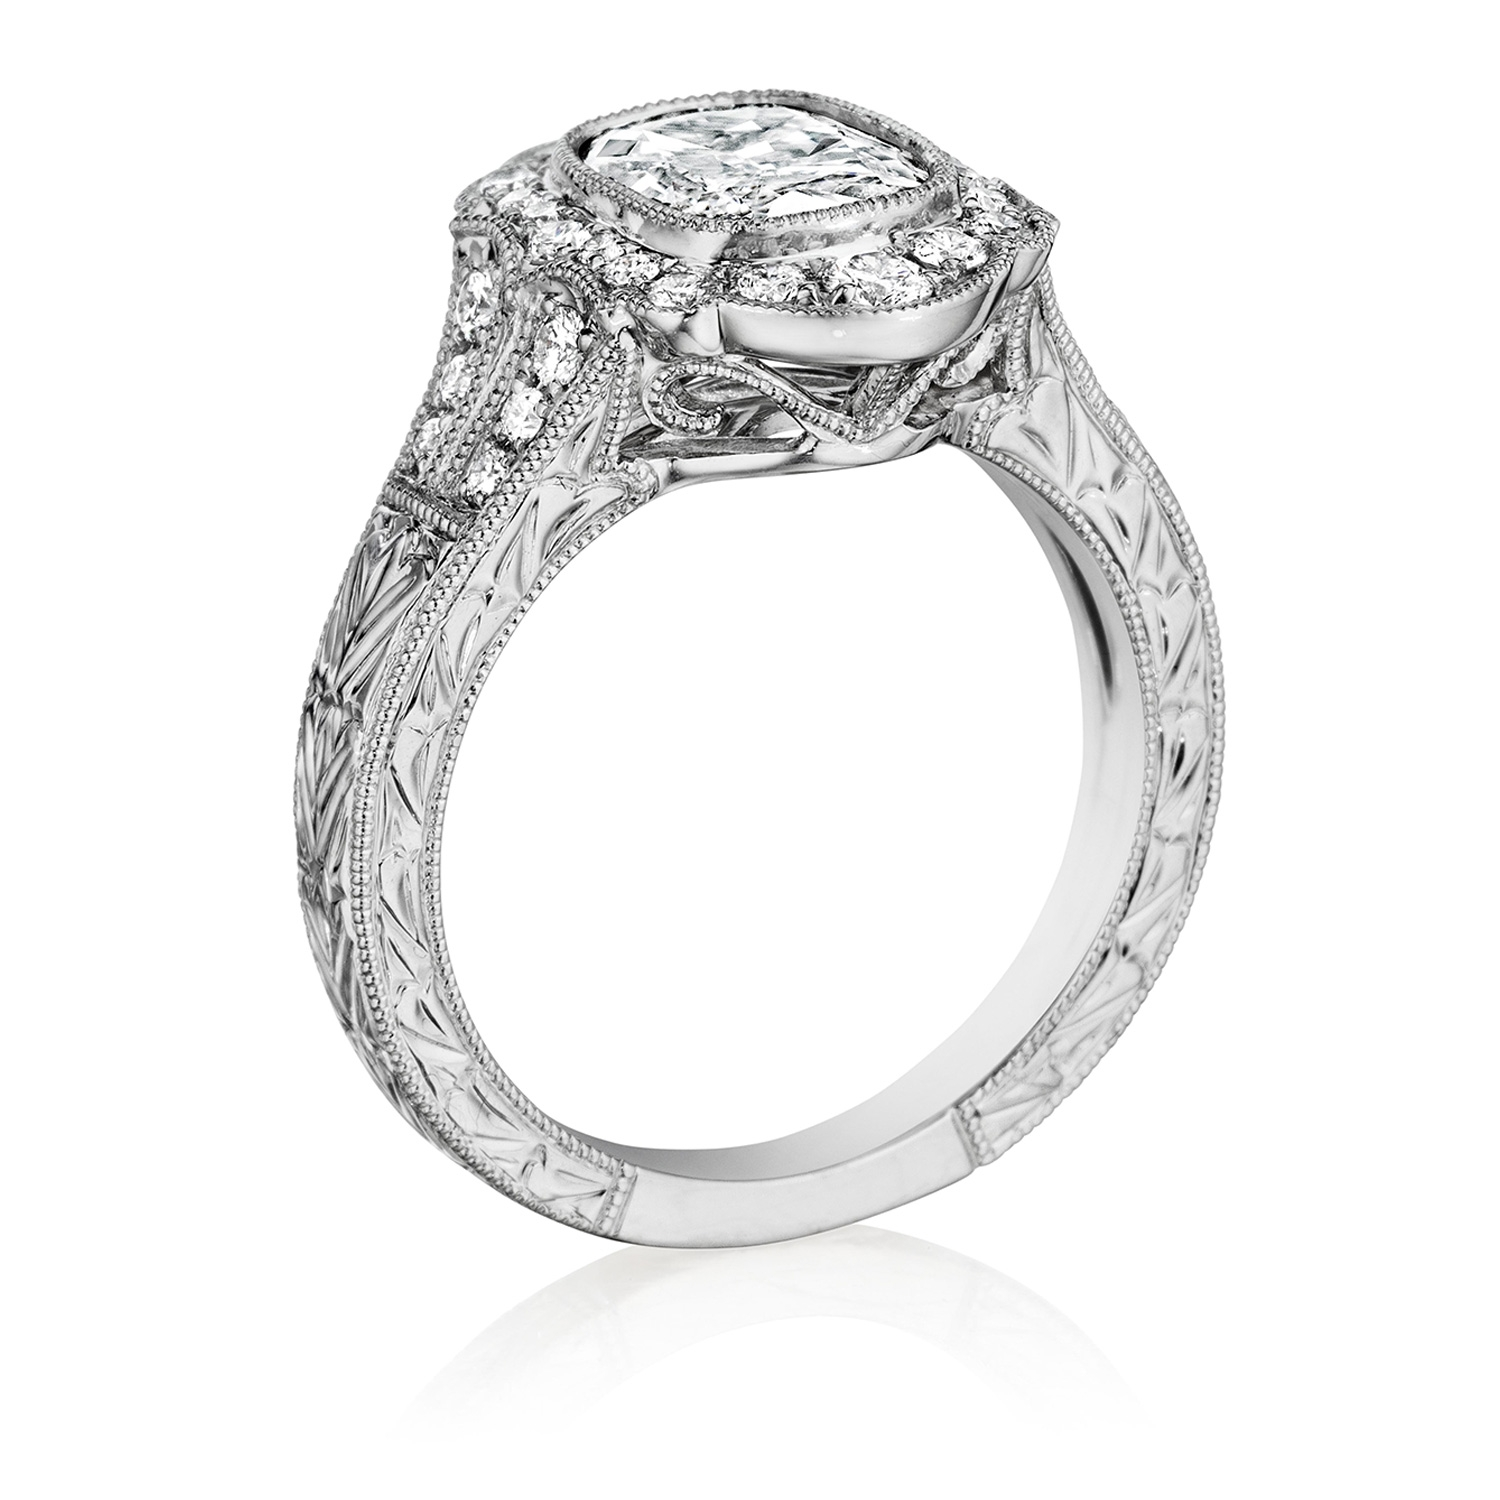 Henri Daussi AFL Cushion Halo Antique Engraved Diamond Engagement Ring Alternative View 1